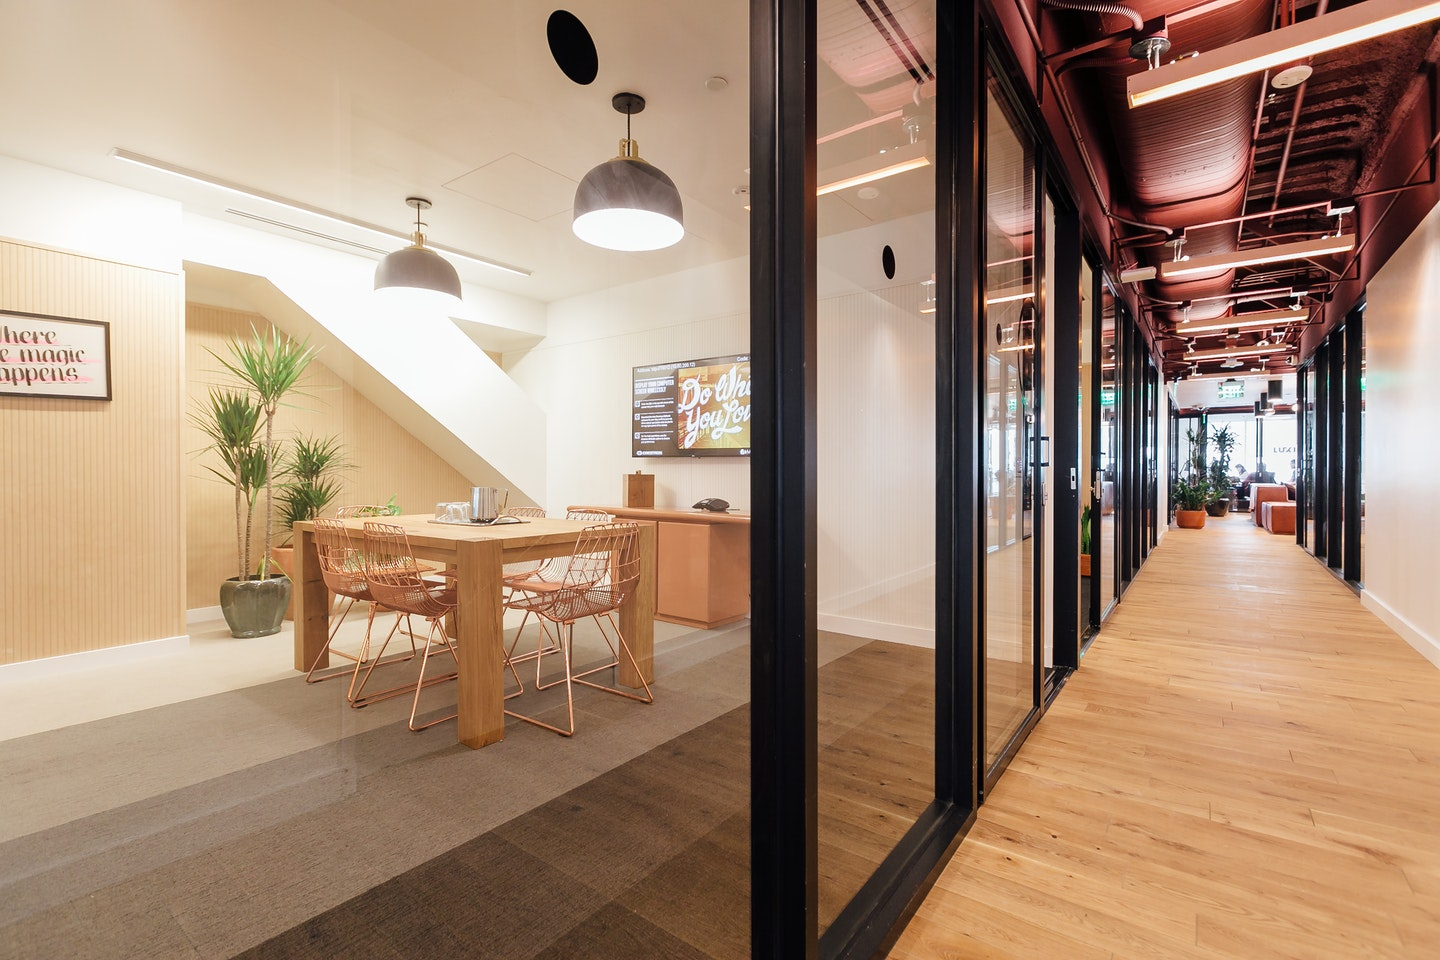 Gas company tower coworking private offices wework - Interior design companies los angeles ...